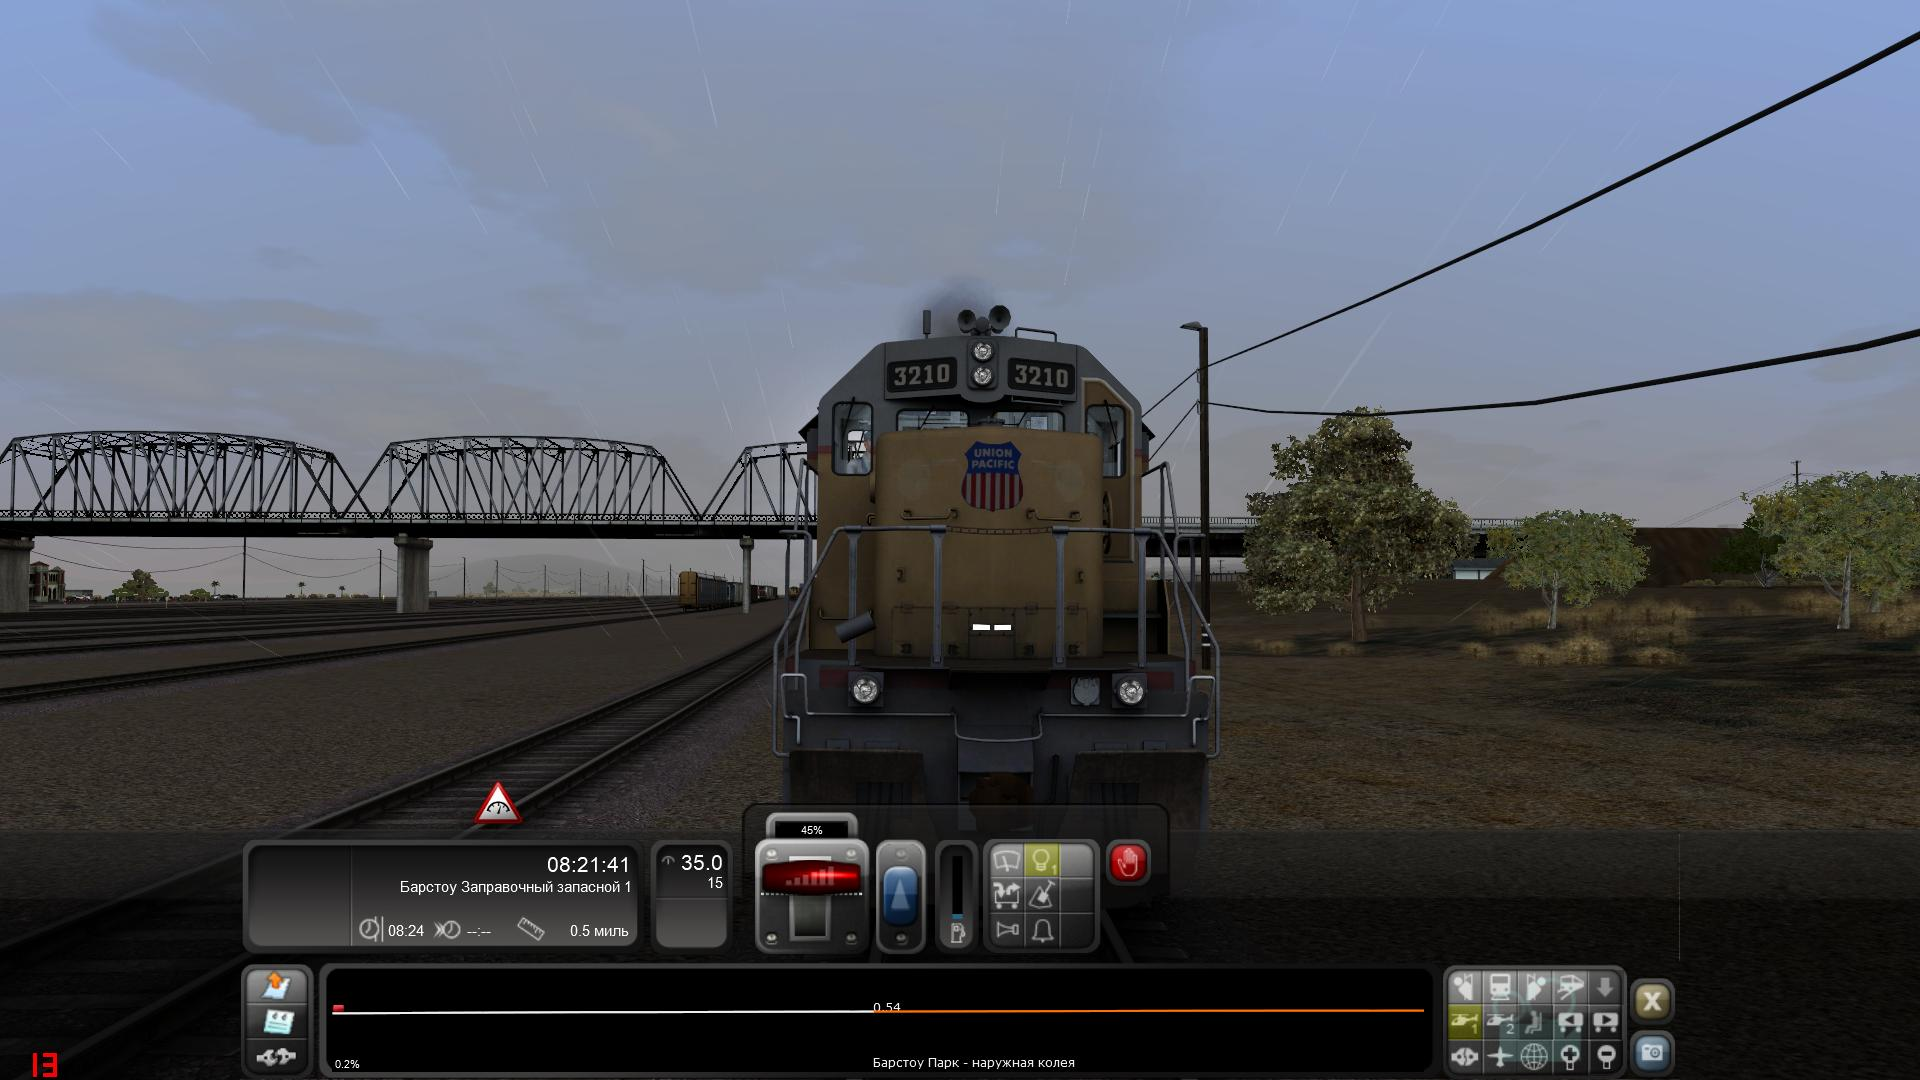 http://screenshot.ru/upload/images/2018/03/09/RailWorksProc22018-03-0919-53-15-66ffd9e.jpg